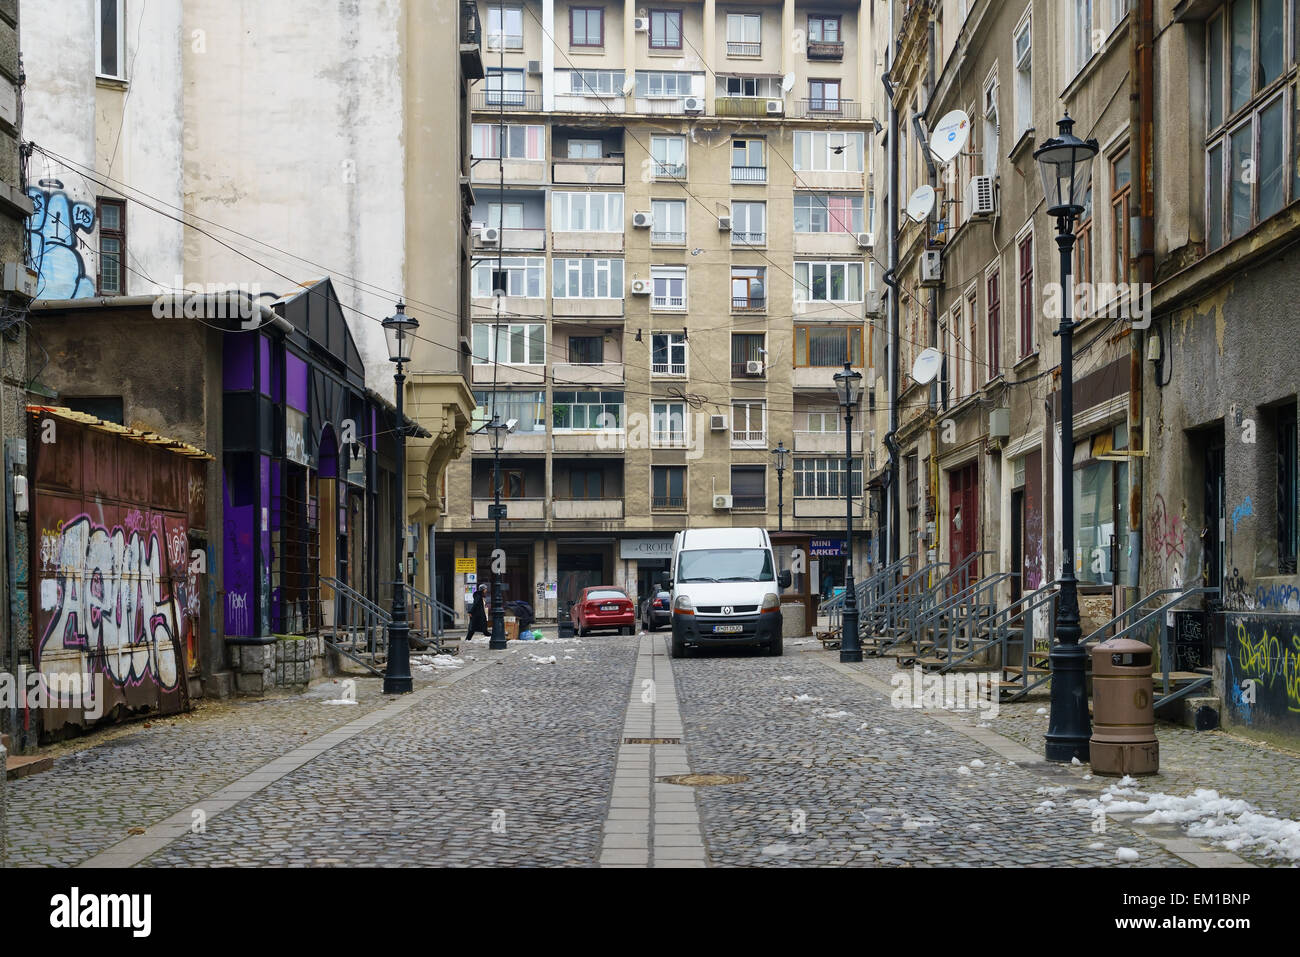 A street and old communist buildings in the city centre of Bucharest, Romania. - Stock Image